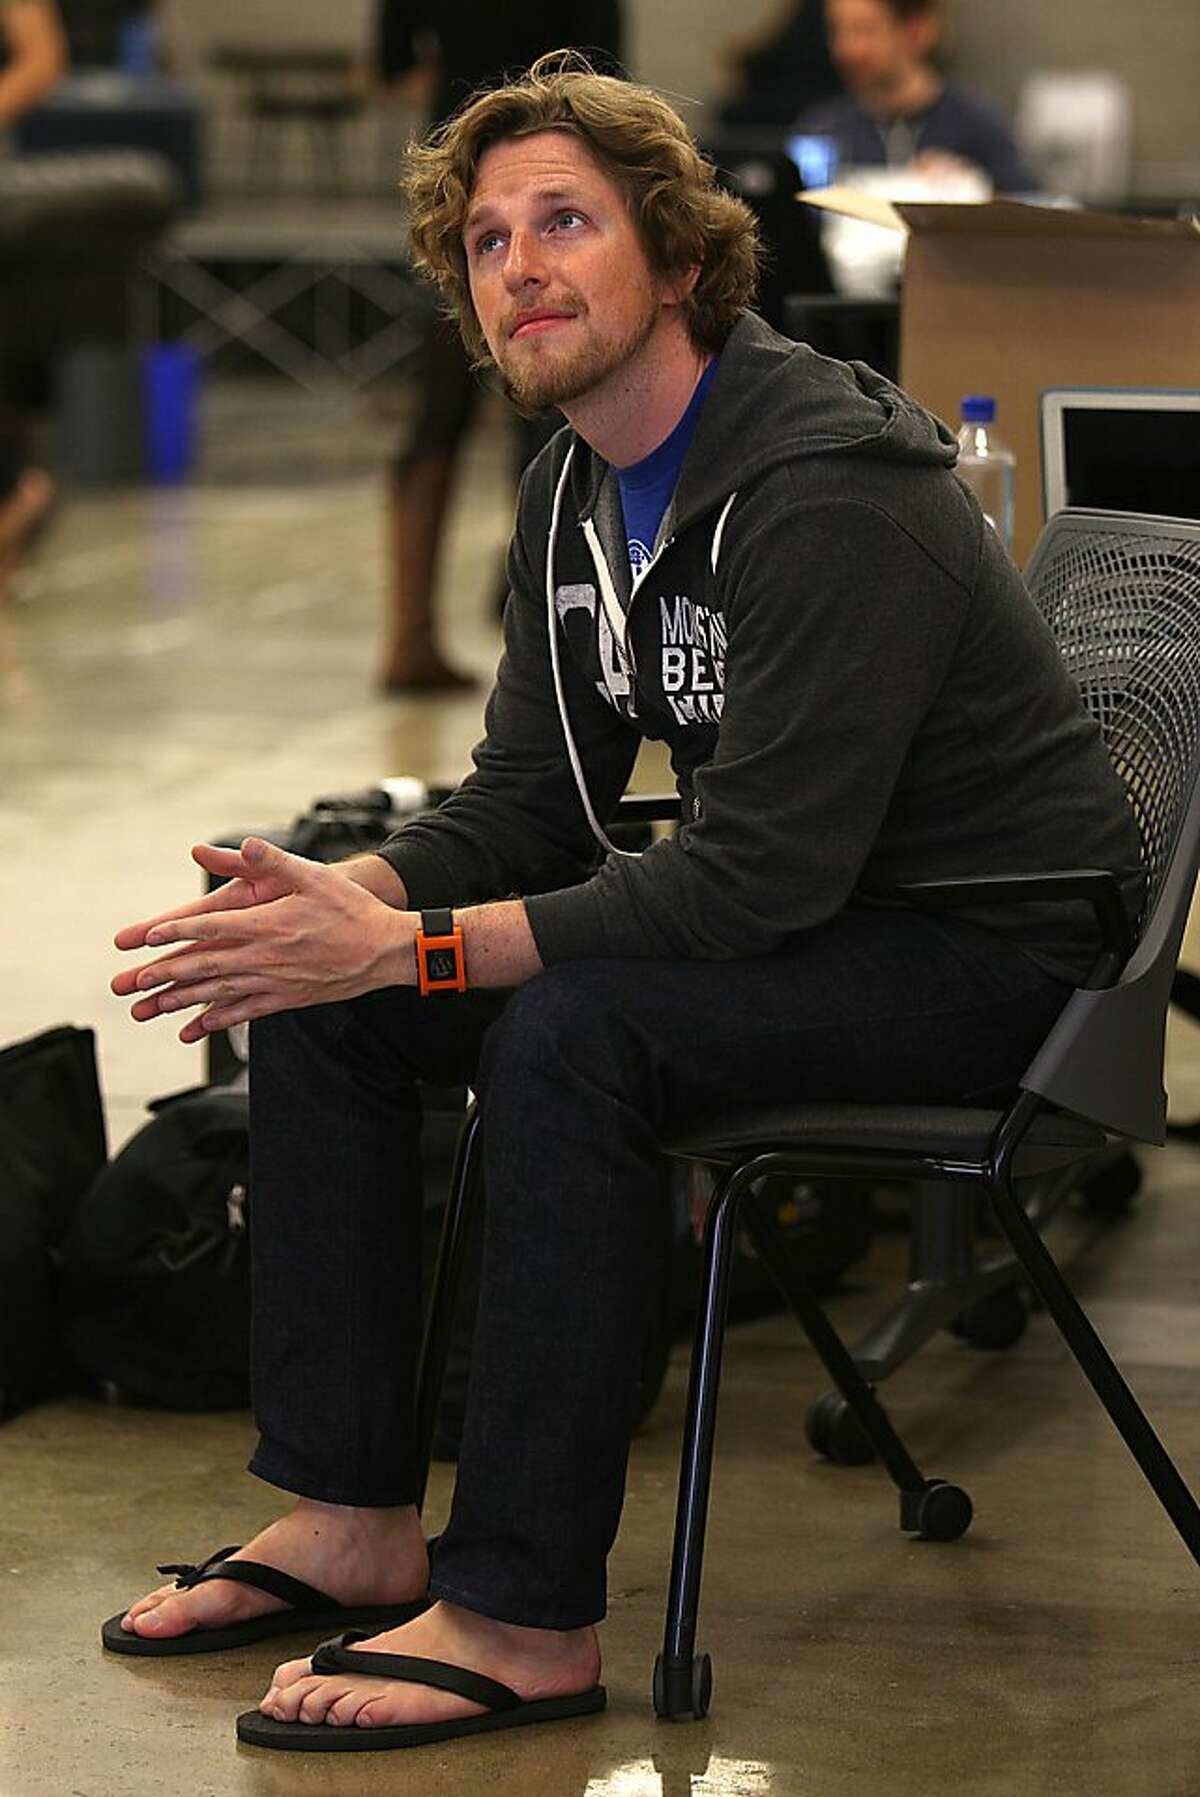 WordPress founder Matt Mullenweg will hold the annual WordCamp conference at the Mission Bay Conference Center.